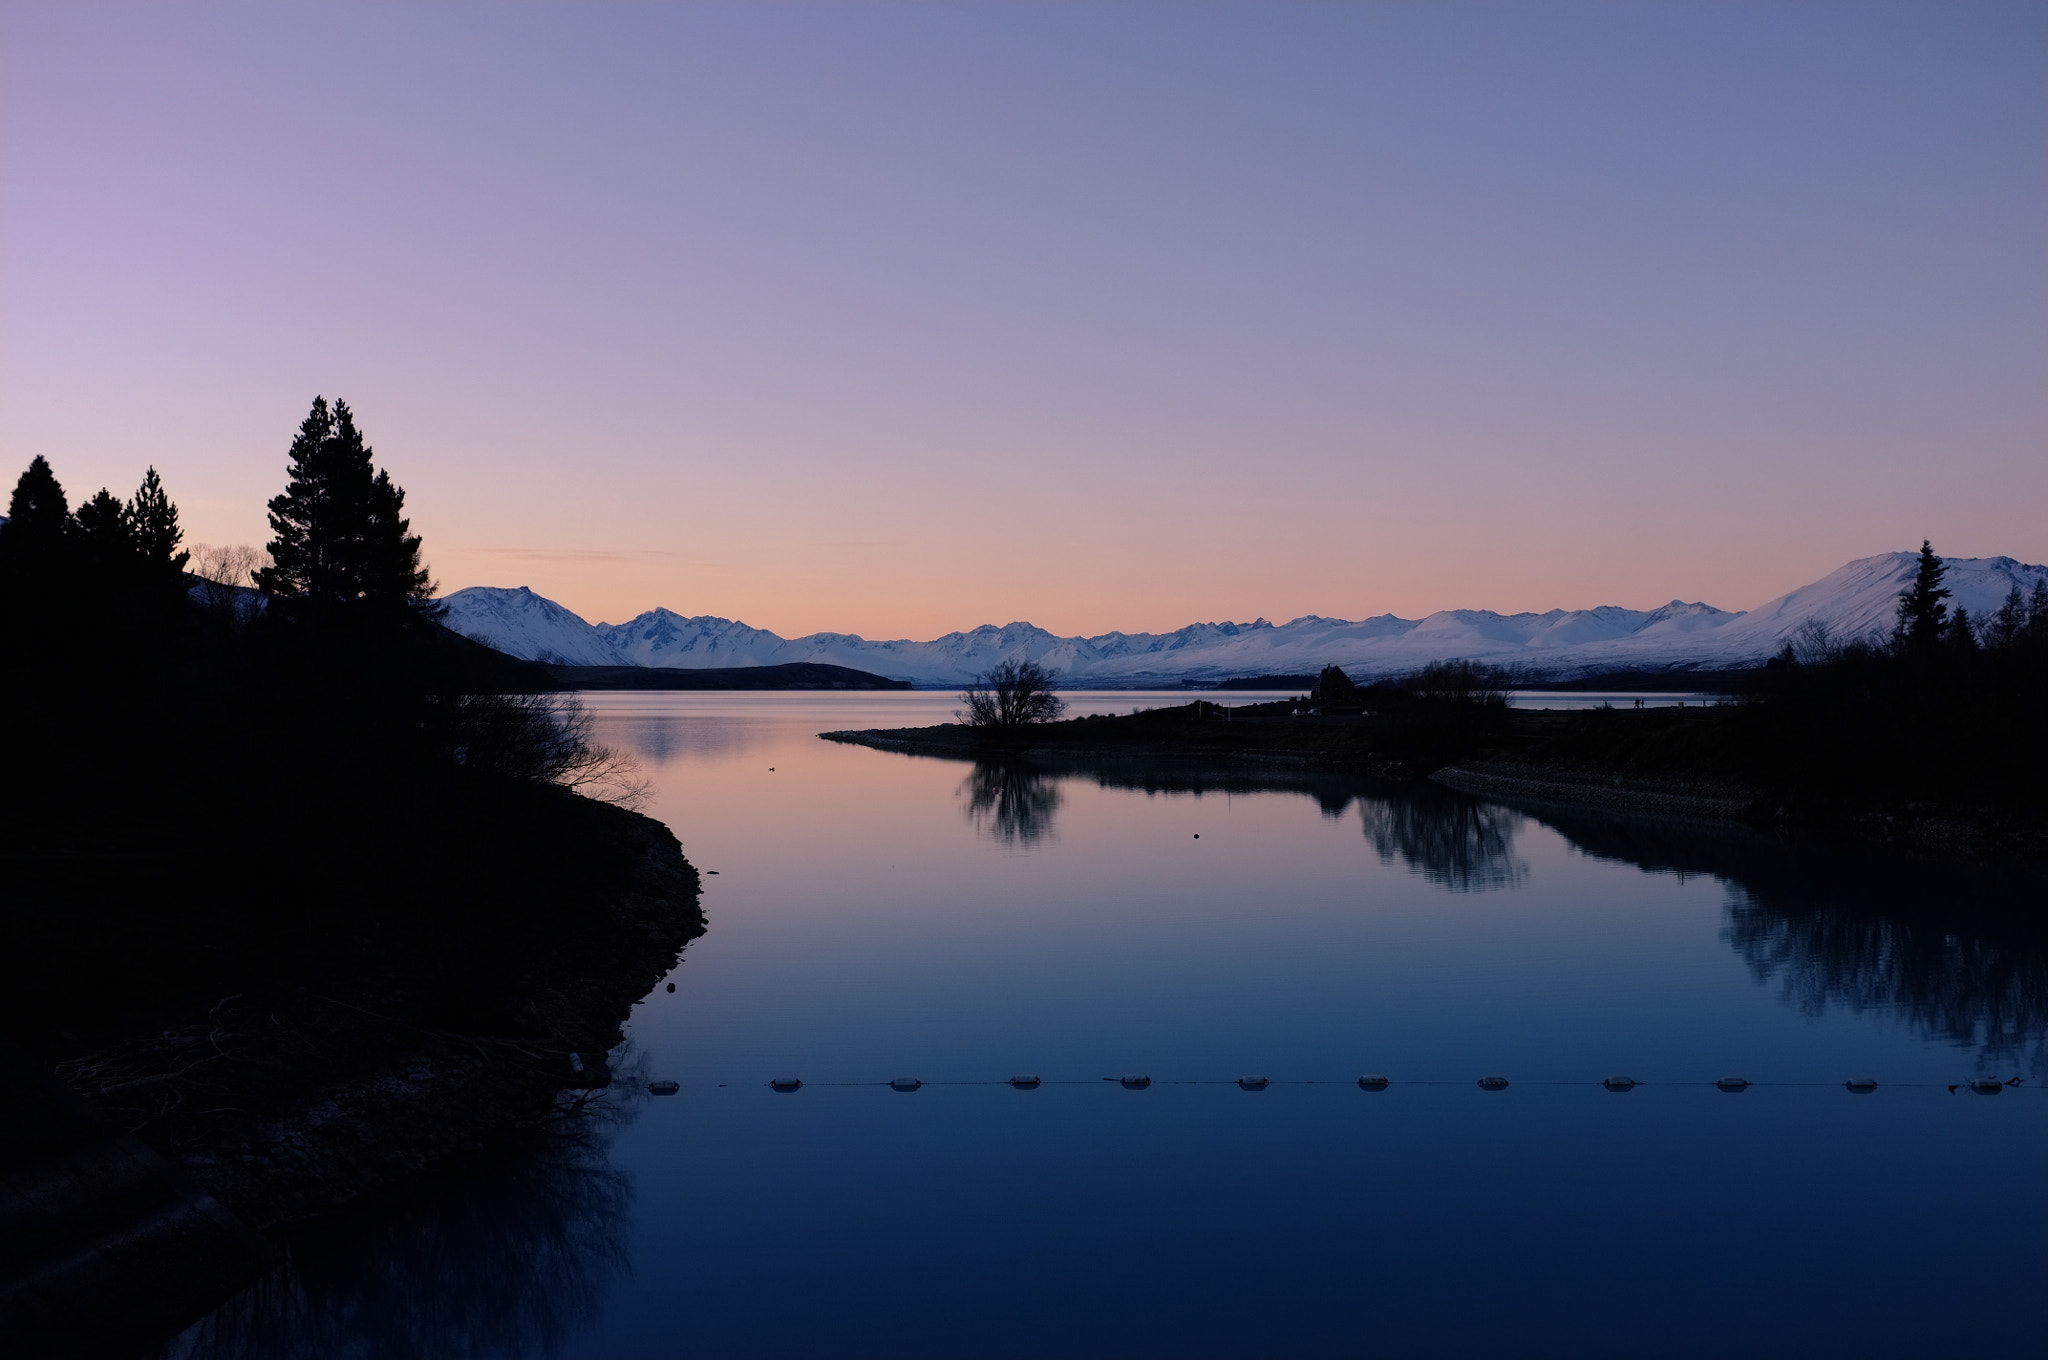 Photograph Tekapo Sunset by Andrew Greig on 500px